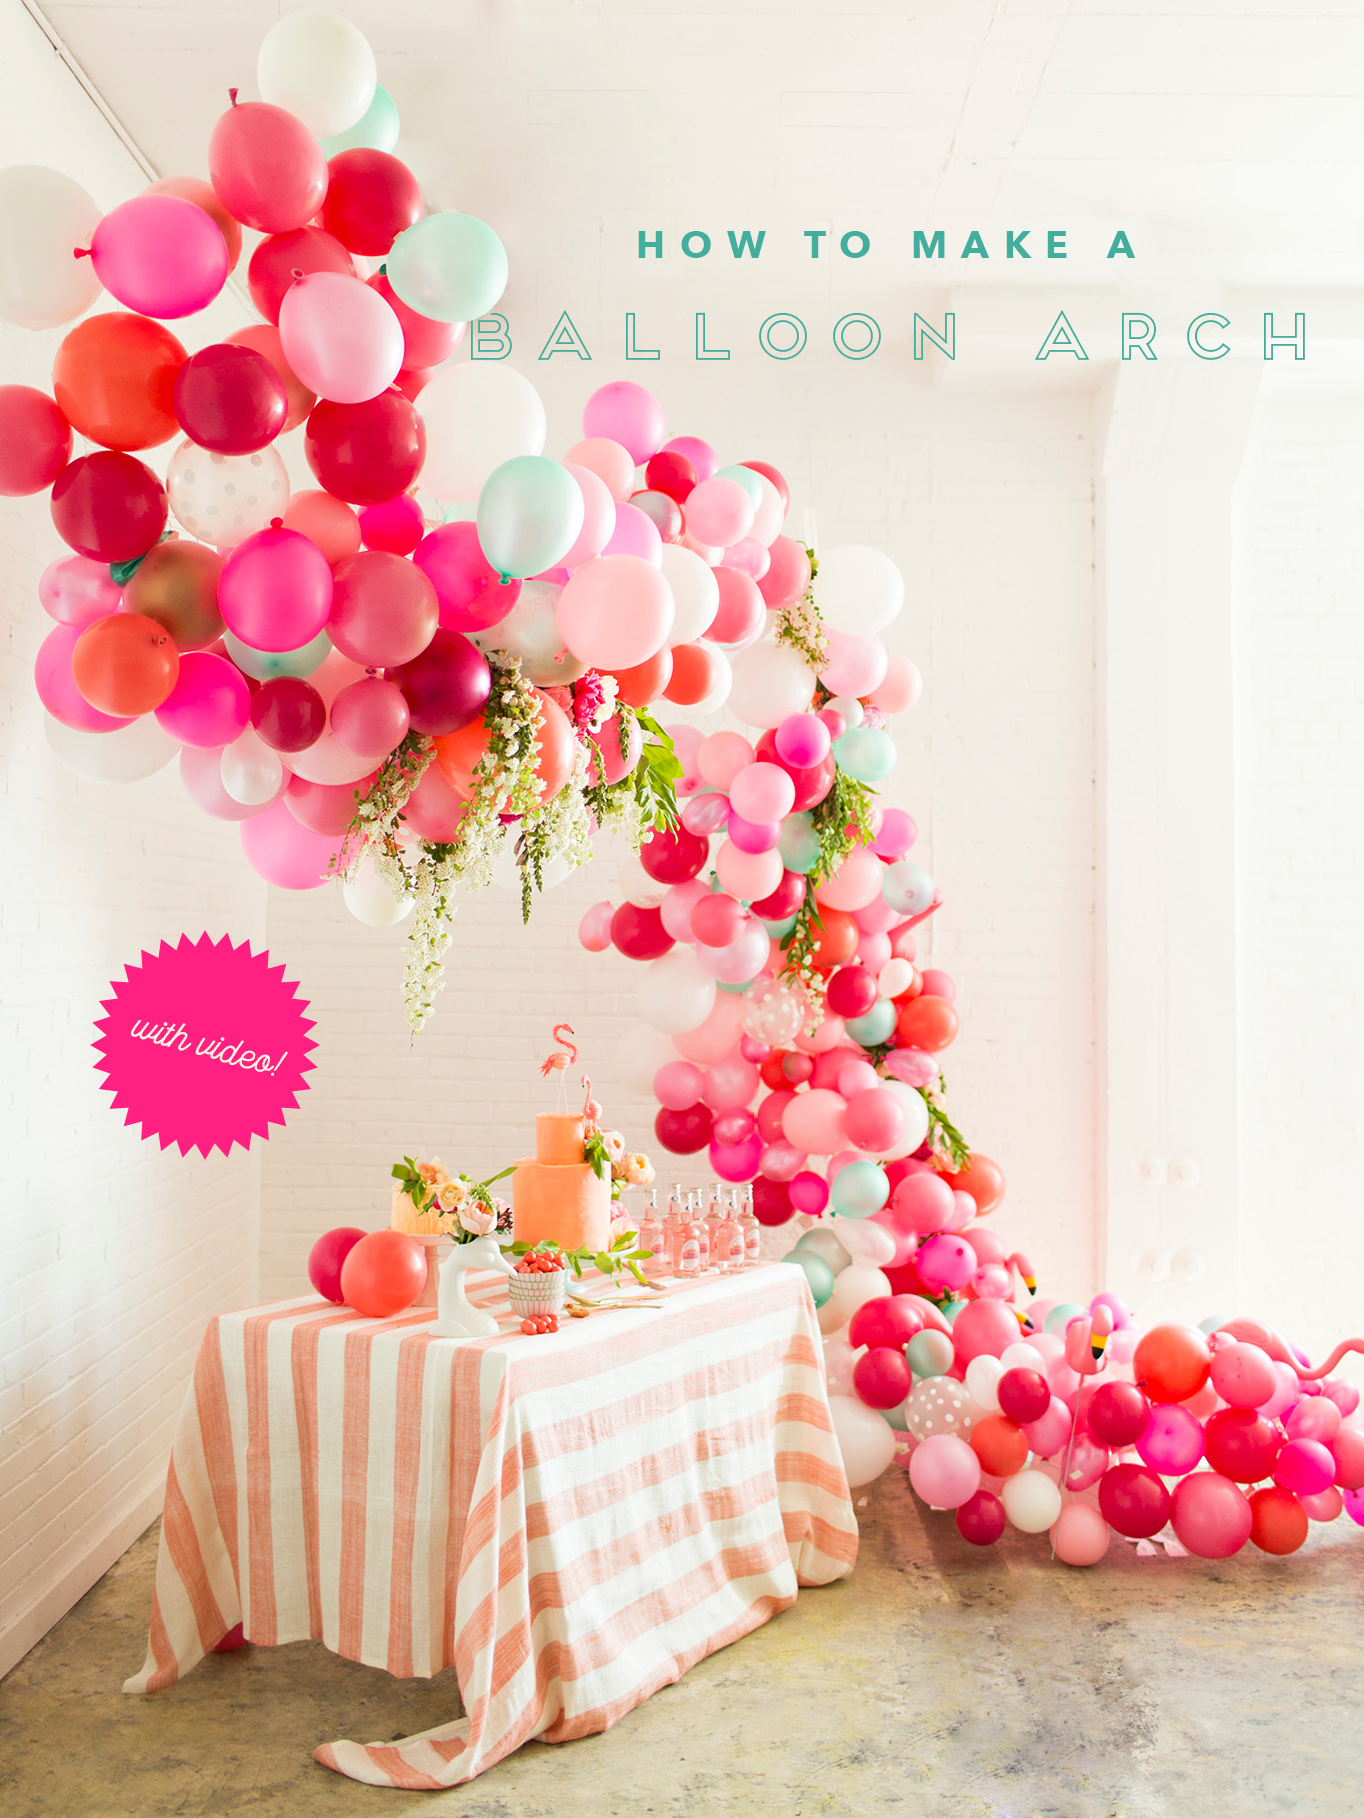 How To Make A Balloon Arch Video Reader Photos The House That Lars Built